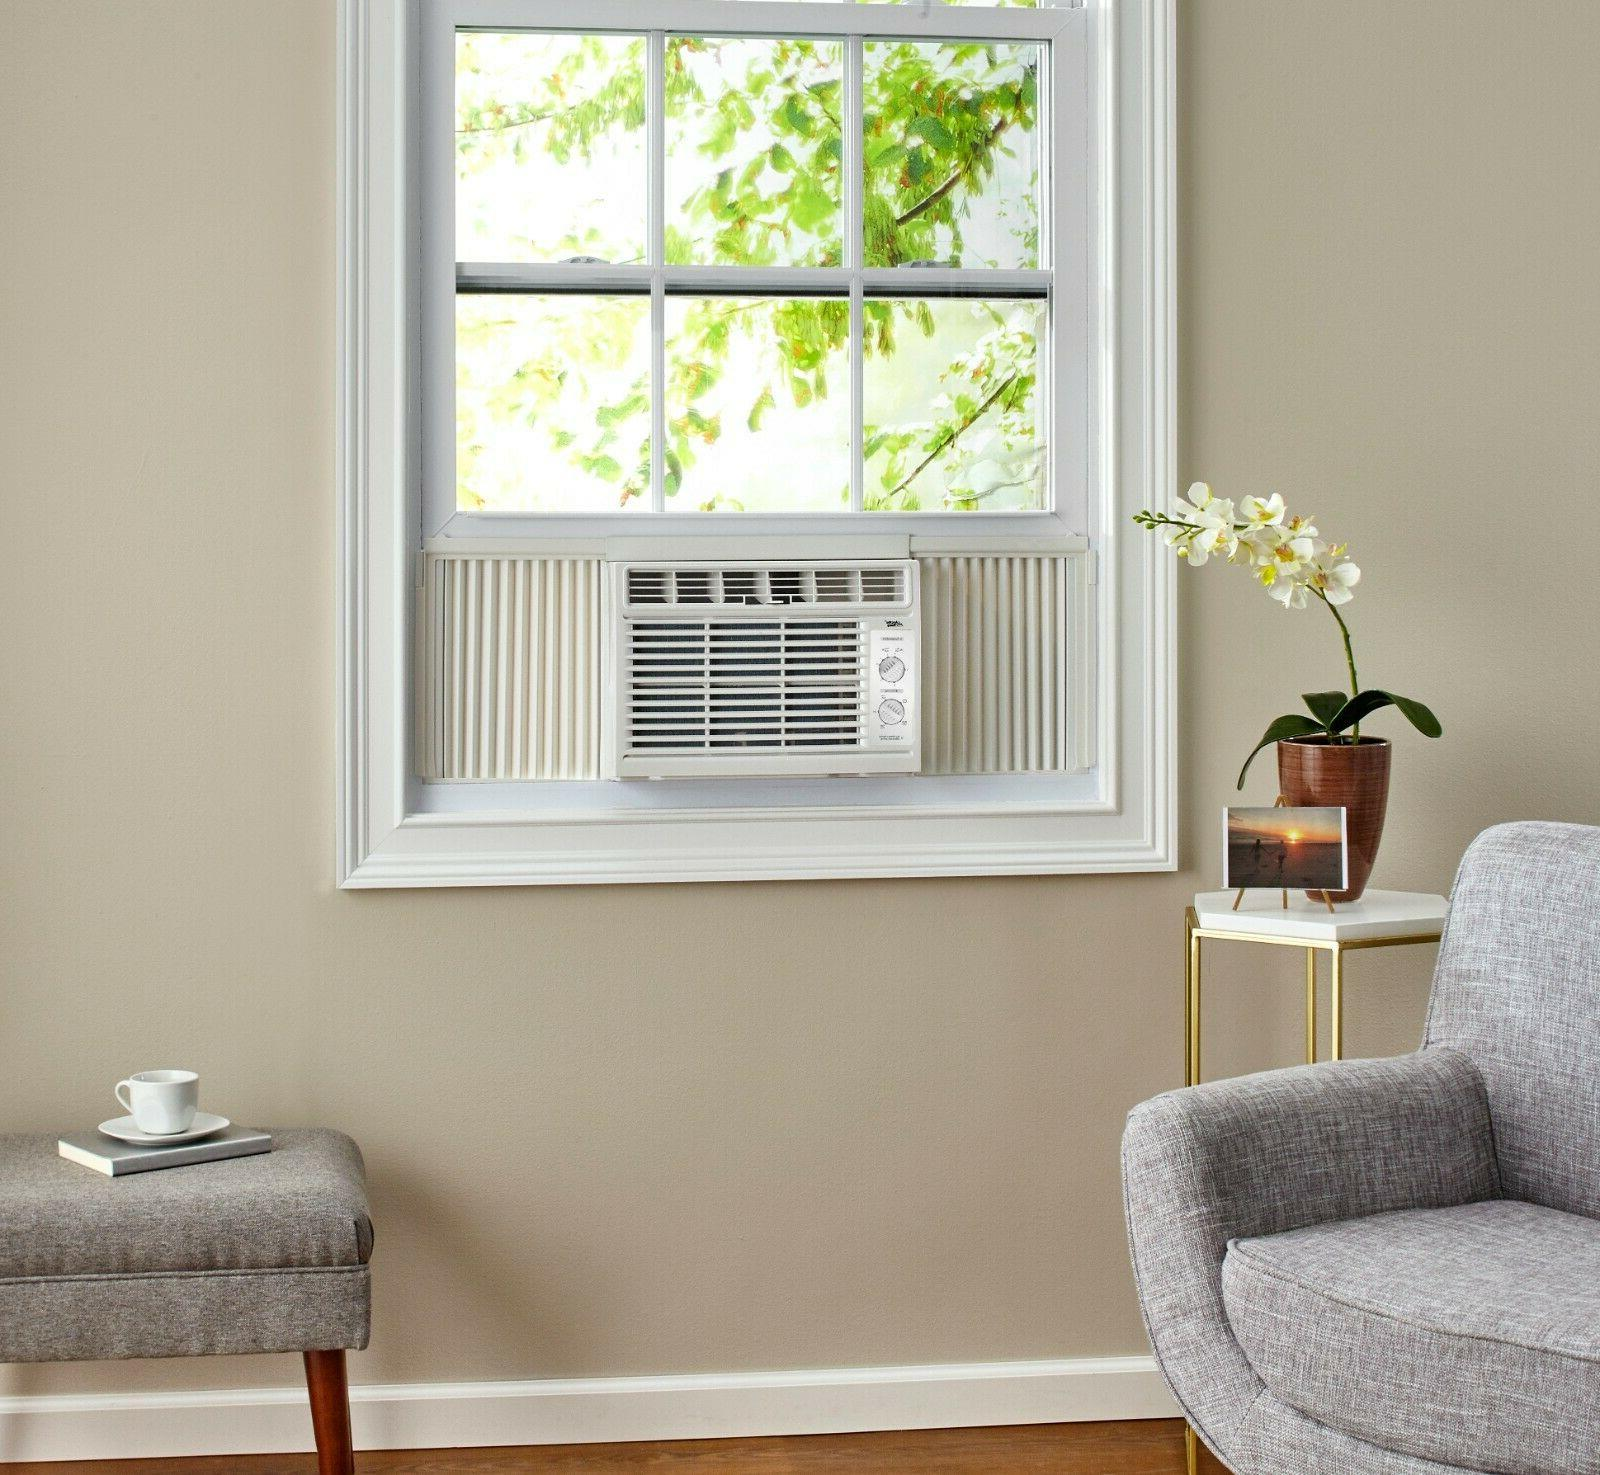 Arctic King 5,000 BTU Mechanical Window A/C Air Conditioner